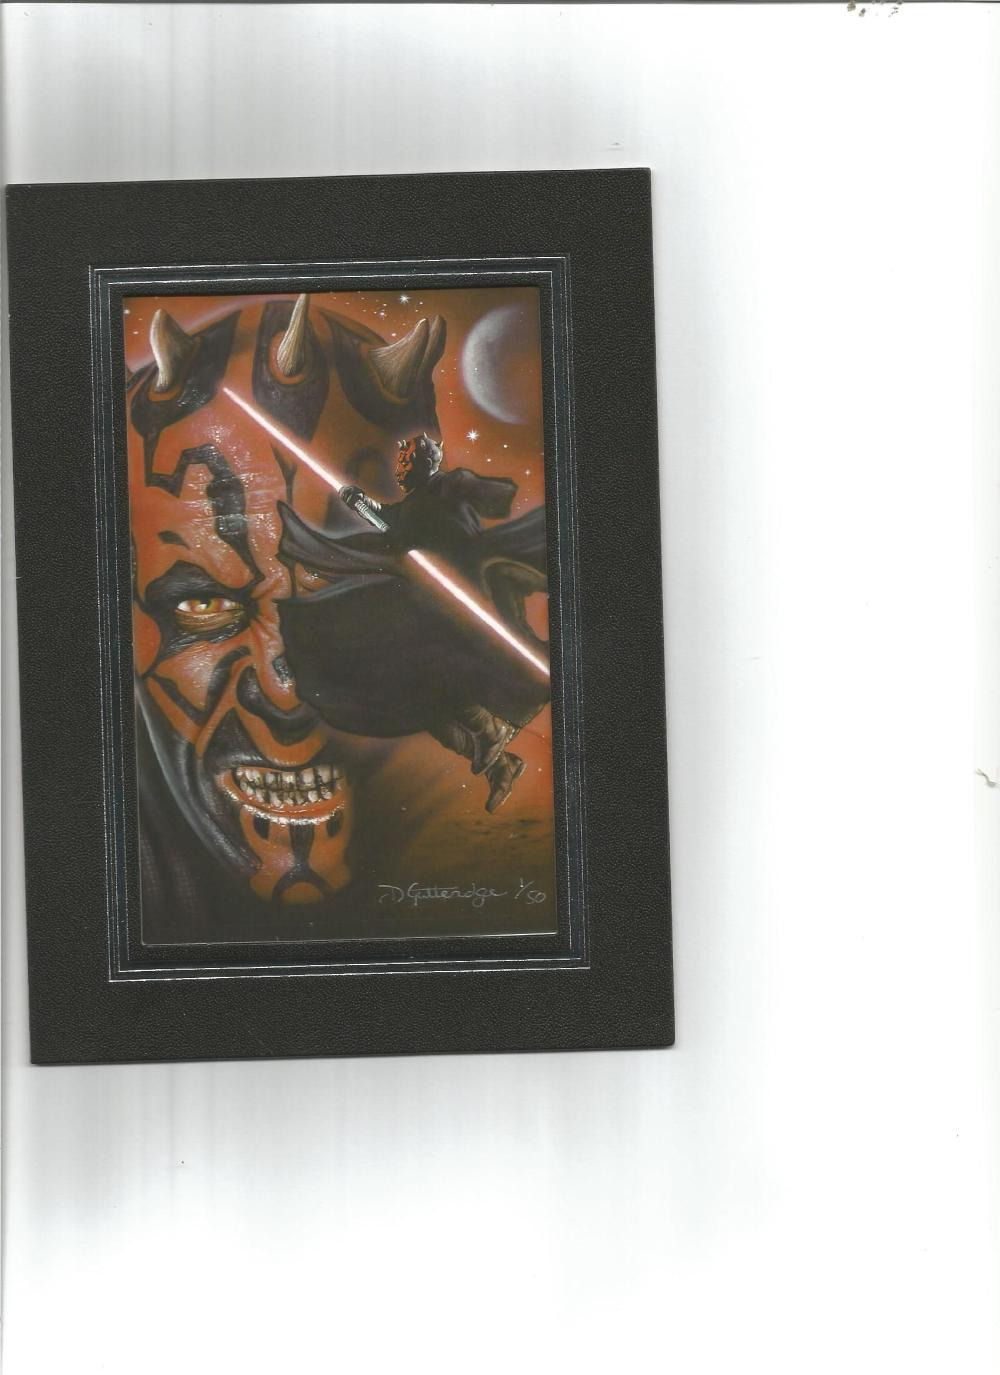 Darth Maul 7x5 limited edition photo. Numbered 1 of 50. Good Condition. All signed pieces come